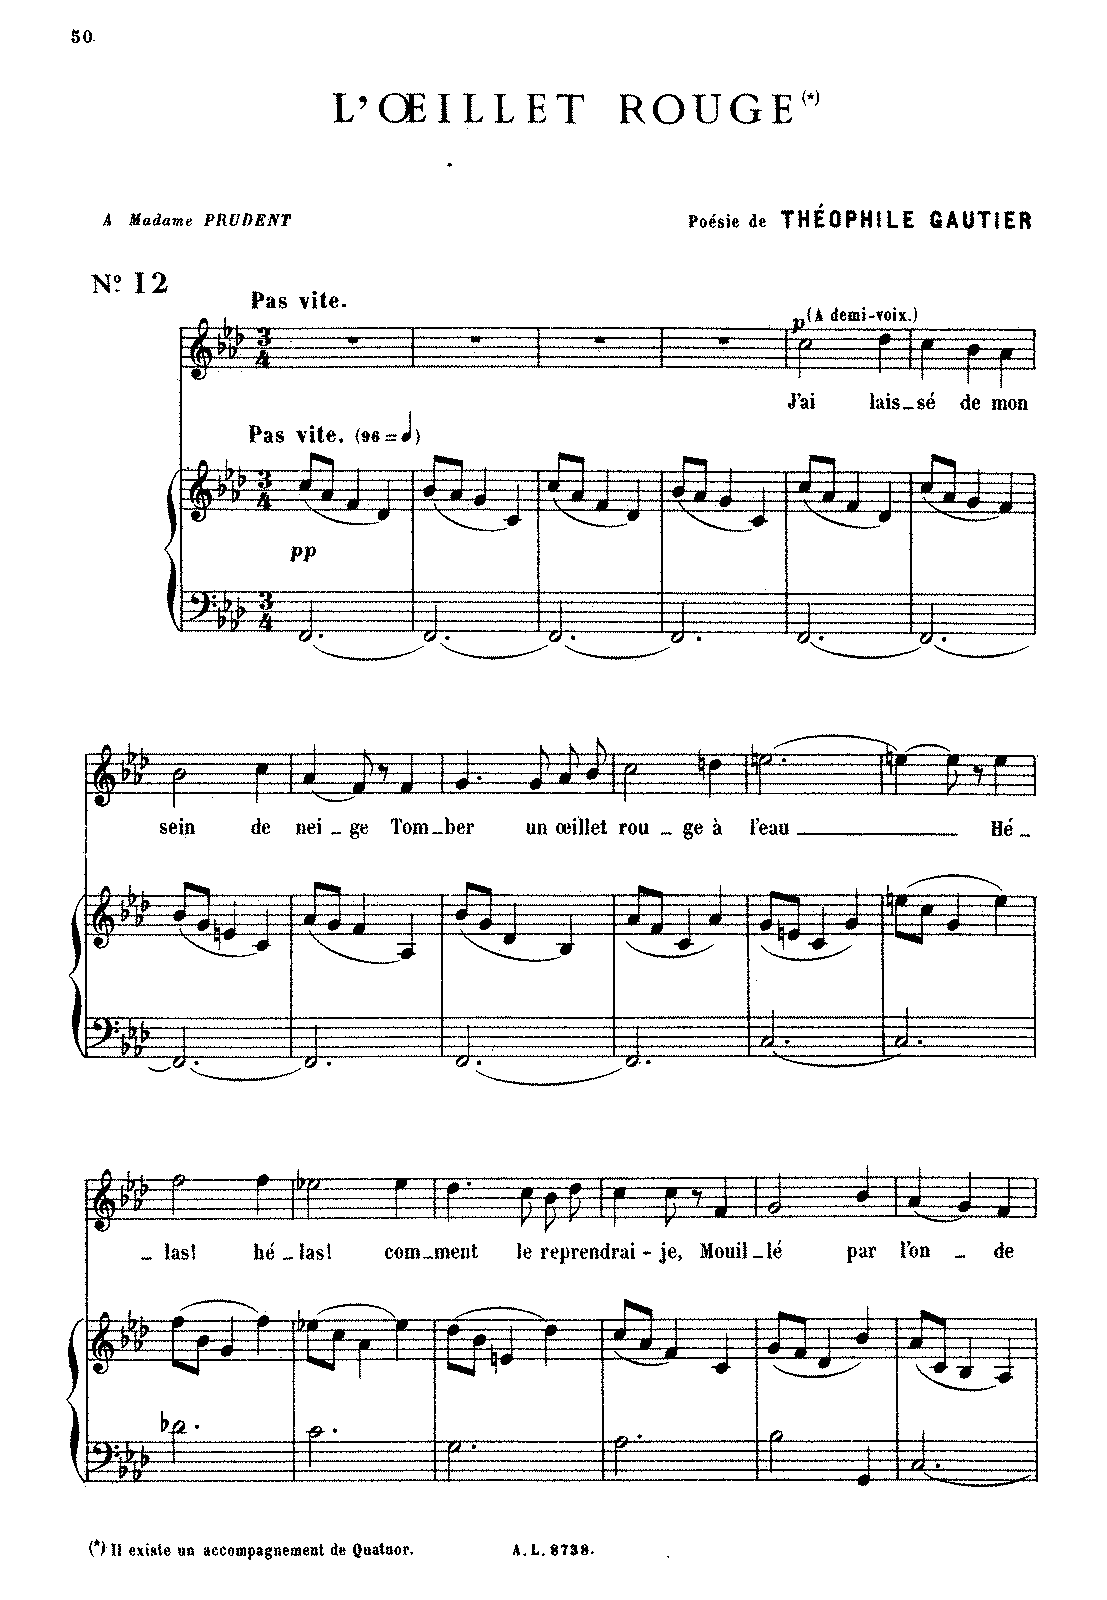 PMLP169796-Pierné - L'œillet rouge (voice and piano).pdf